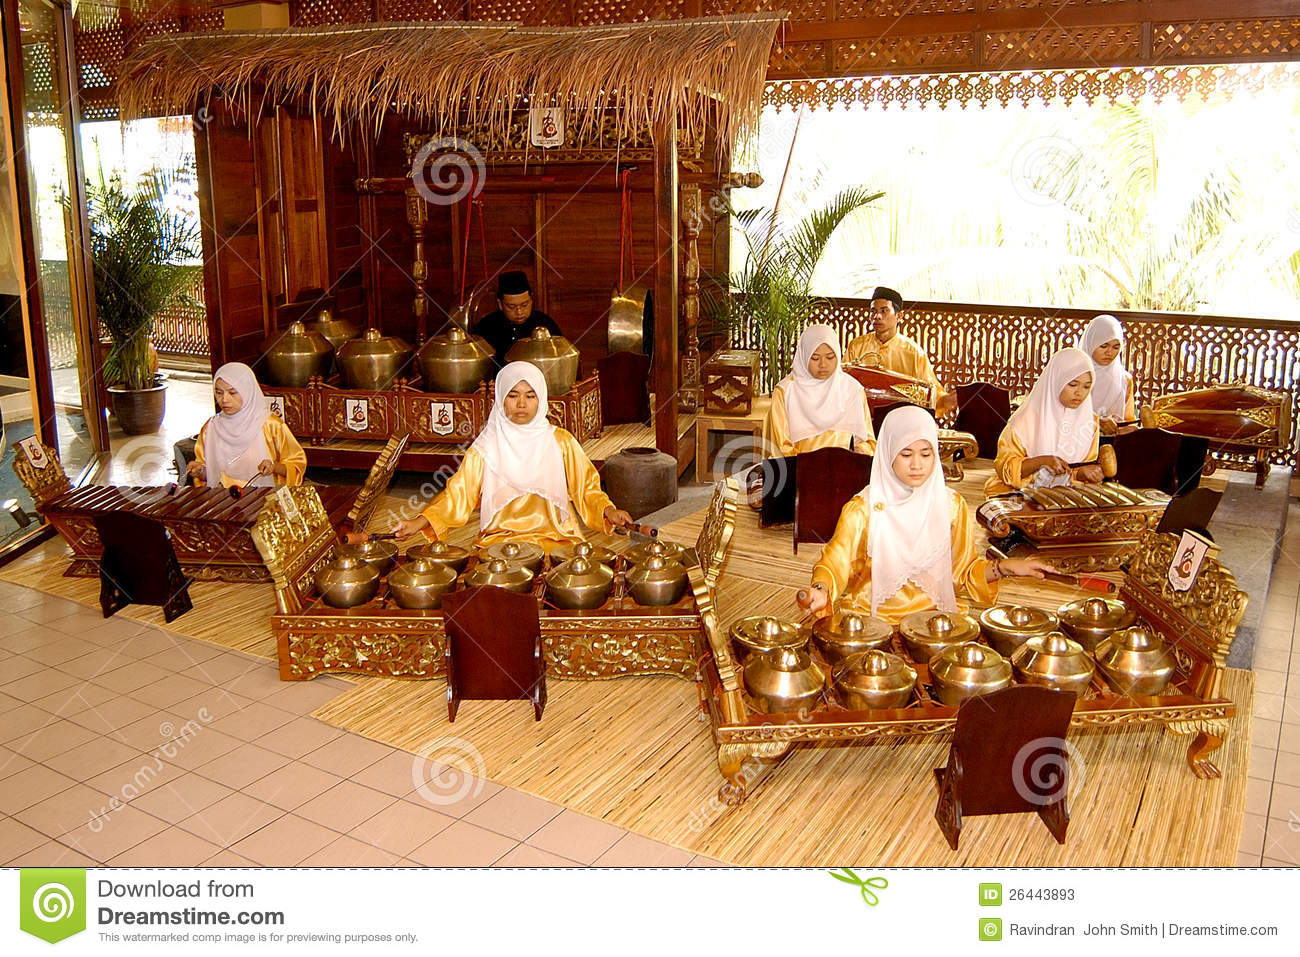 malaysian traditional music Malay 0 tracks, not registered with a pro 1 tracks, registered with a pro waveform will be available soon / royalty free music, ascap-free music, production music library, stock music, music publishing & music production.